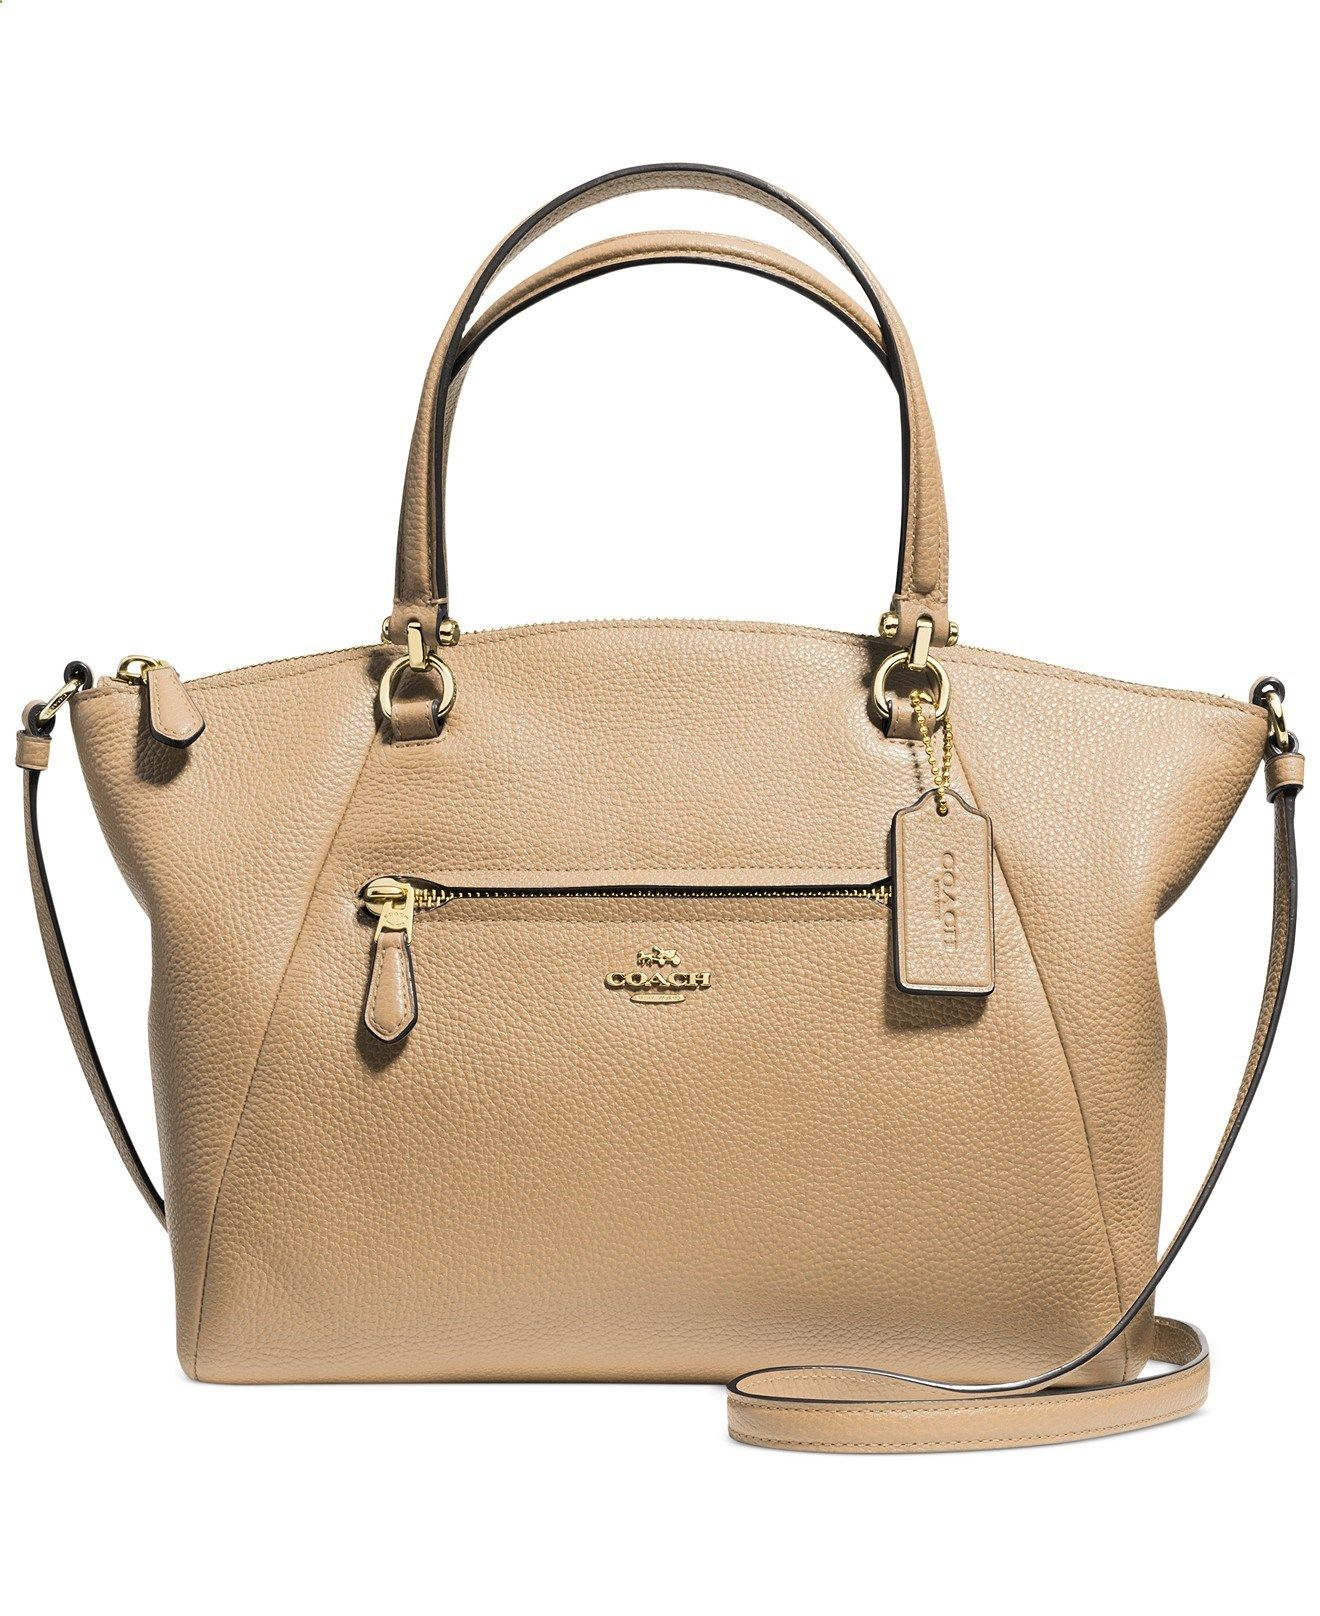 coach leather handbags outlet d7r0  COACH PRAIRIE SATCHEL IN PEBBLE LEATHER